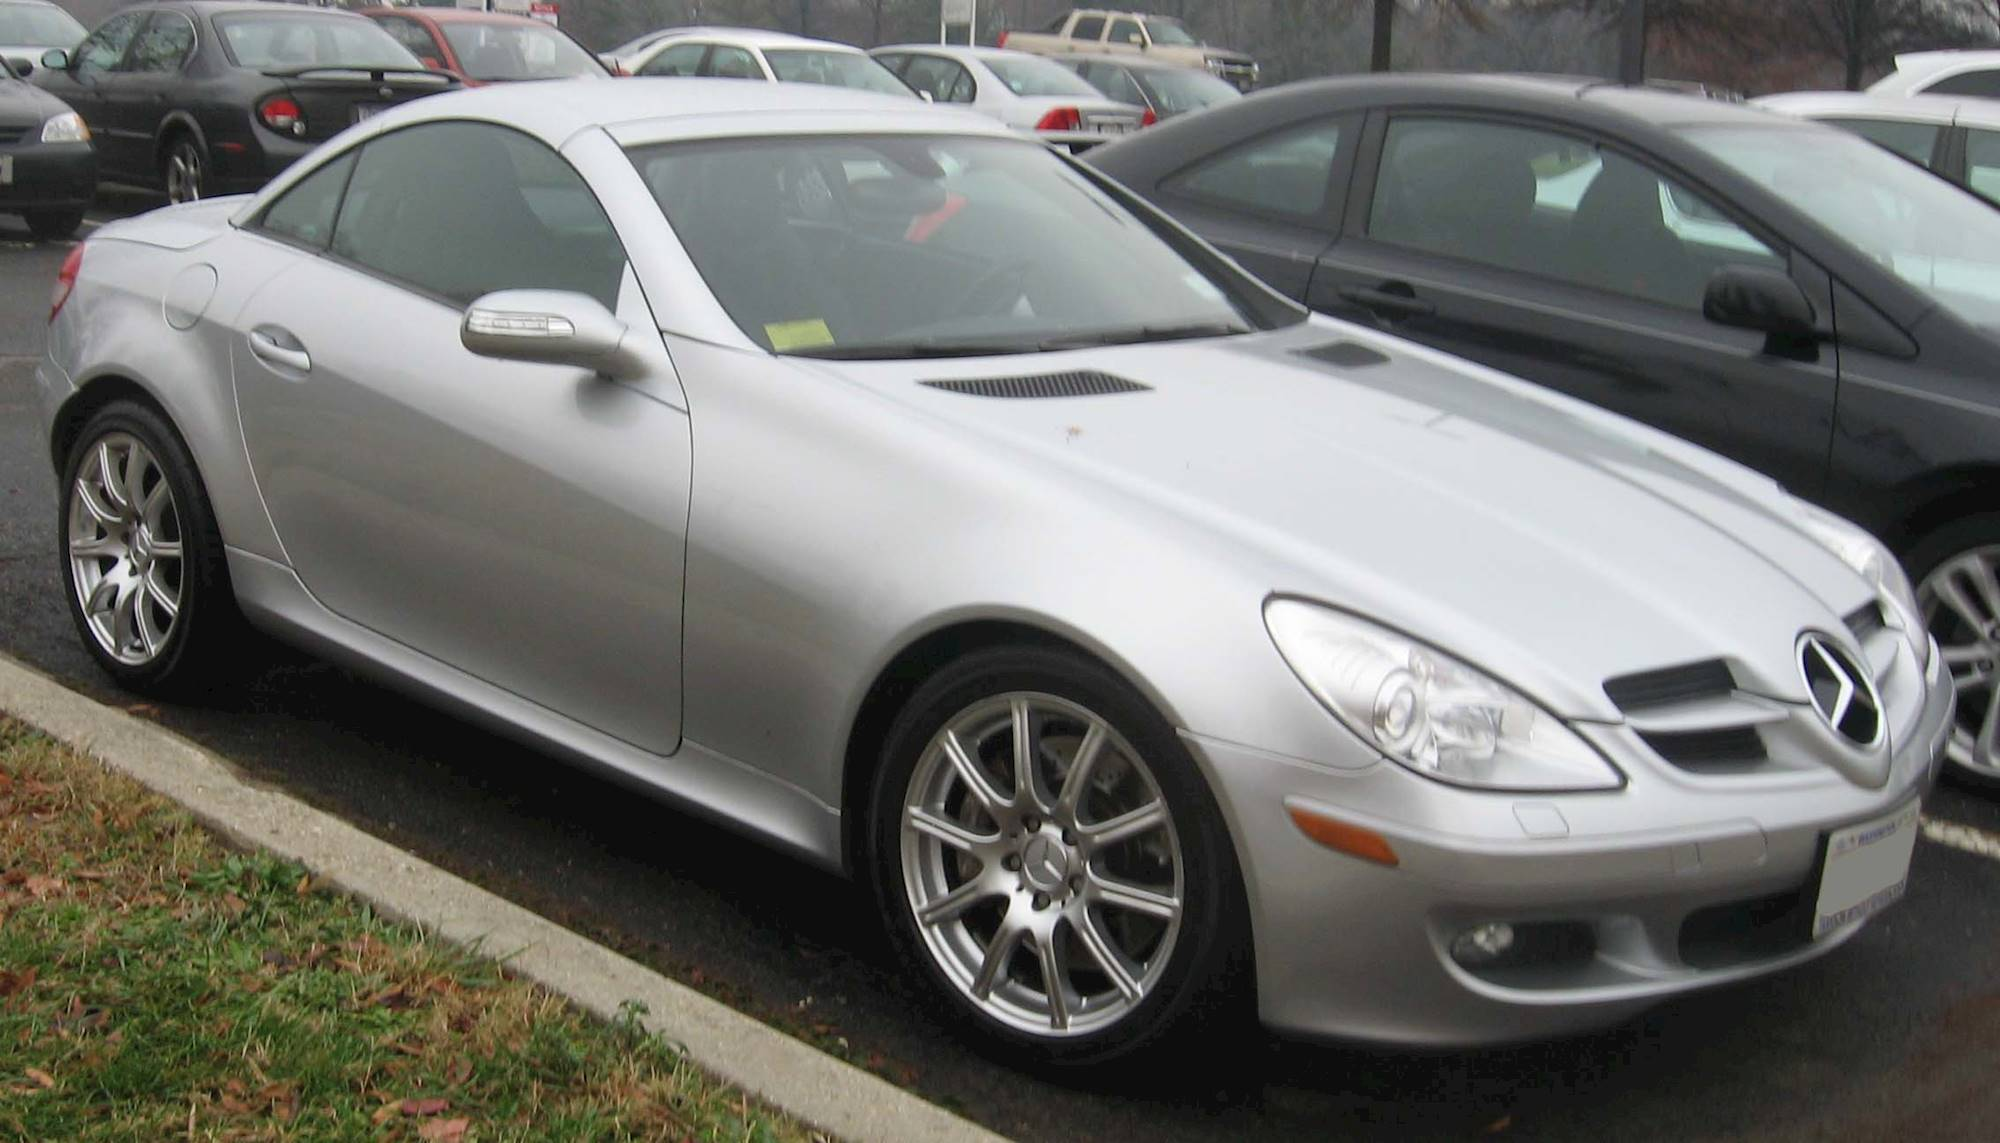 2006 Mercedes Benz SLK350 Base 2dr Roadster 6 spd manual w OD